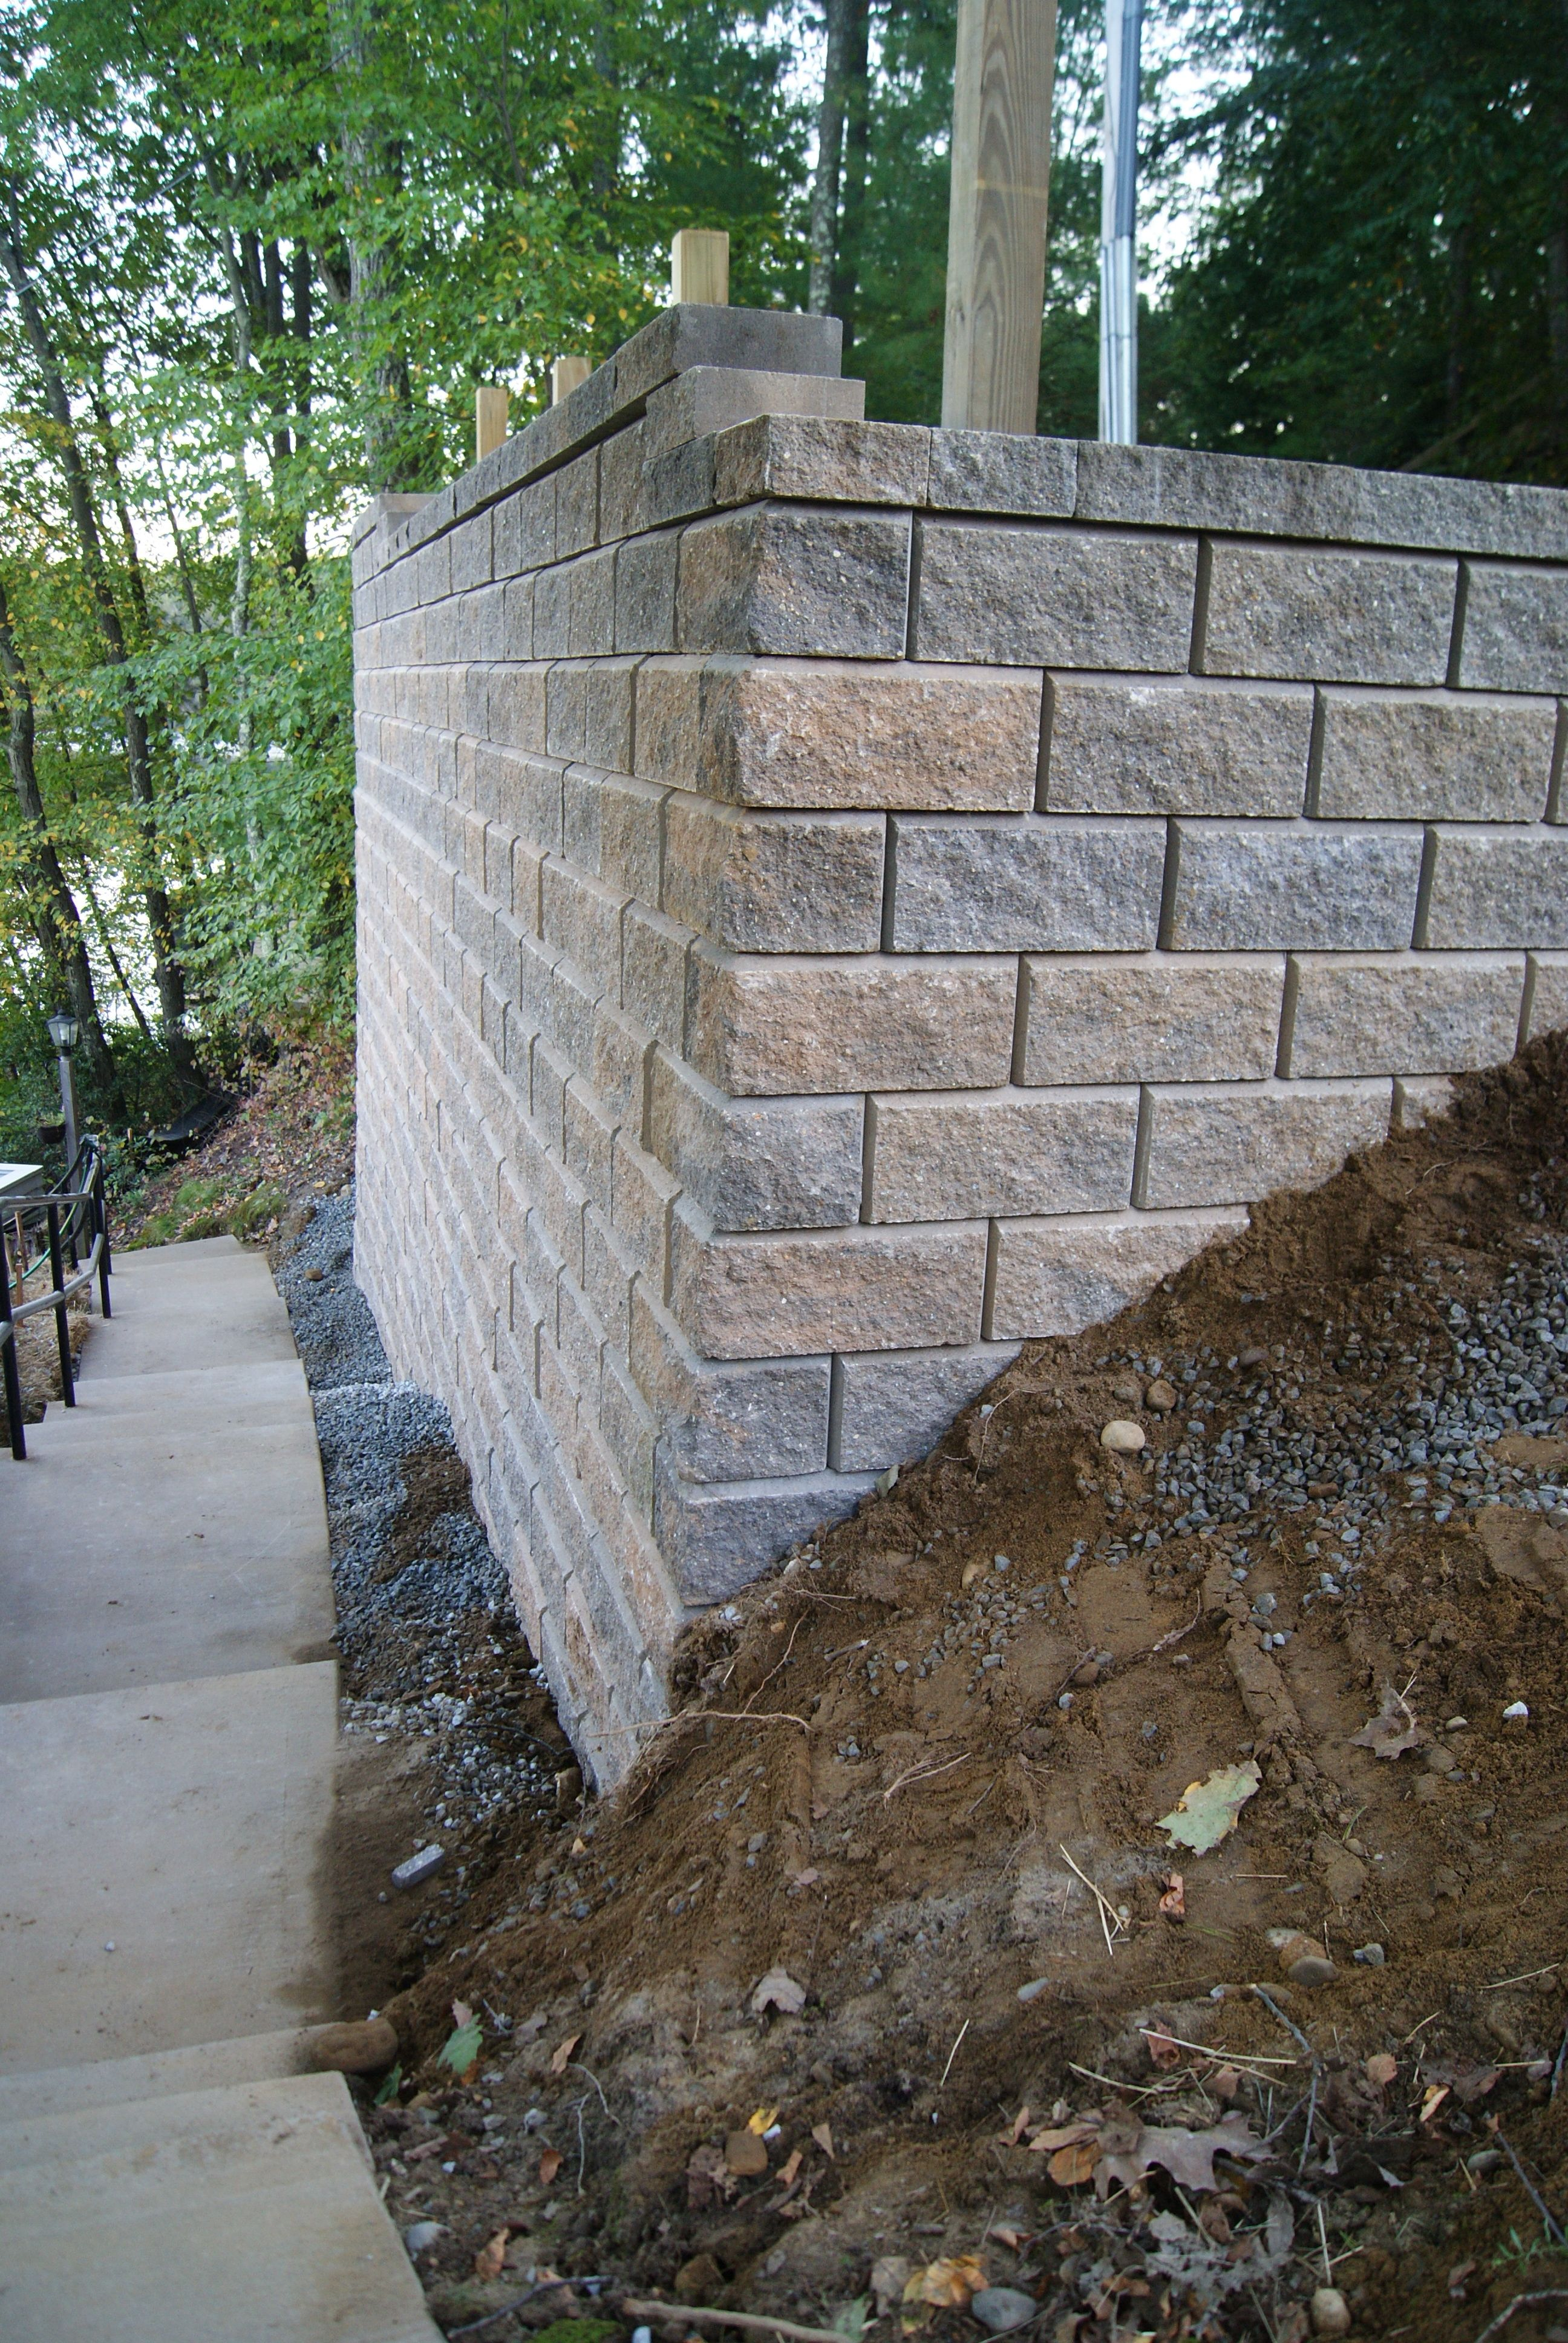 Keystone Victorian Wall For Parking Area Above Hardscape Retaining Wall Retaining Wall Blocks